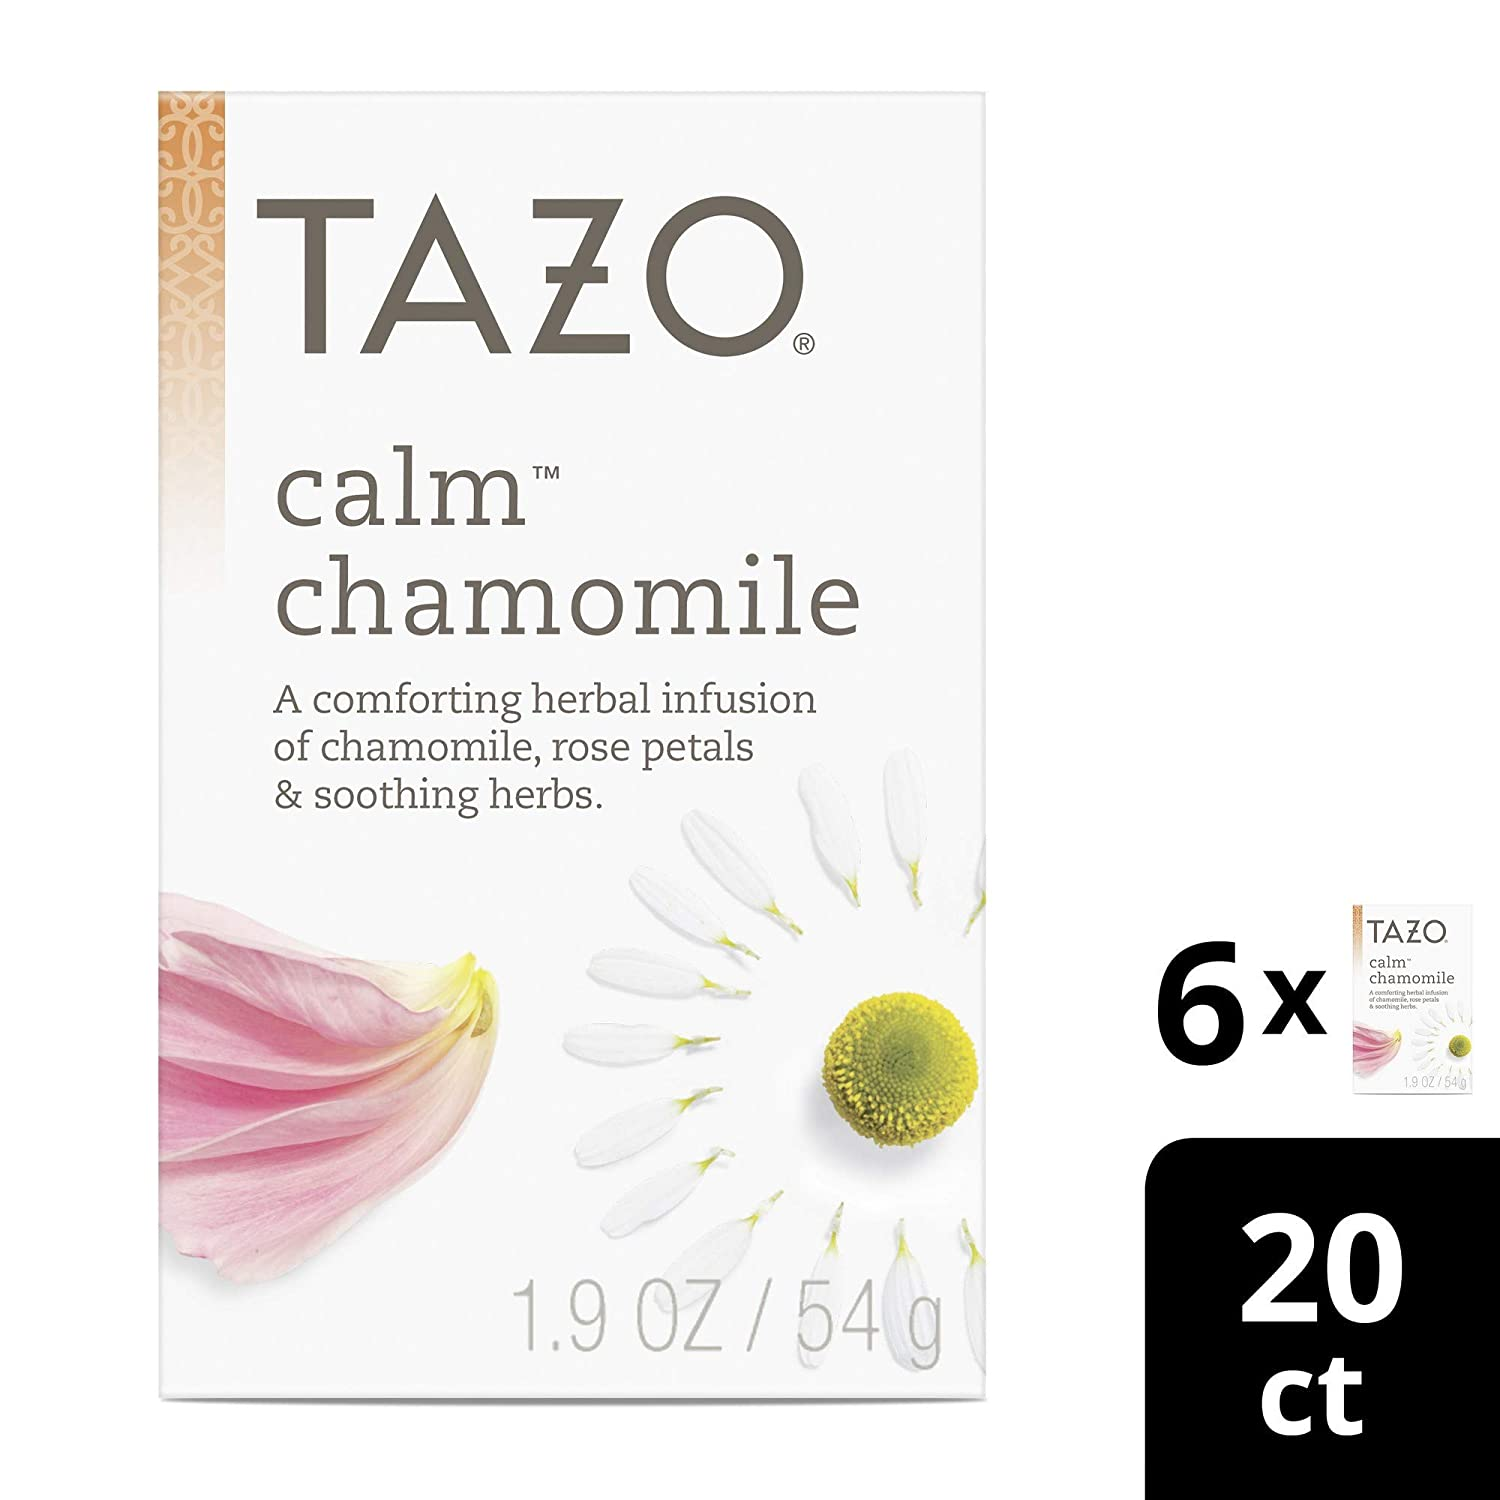 Tazo Tea Bags for a cup of relaxing chamomile tea Calm Chamomile Herbal Tea caffeine free 20 count pack of 6